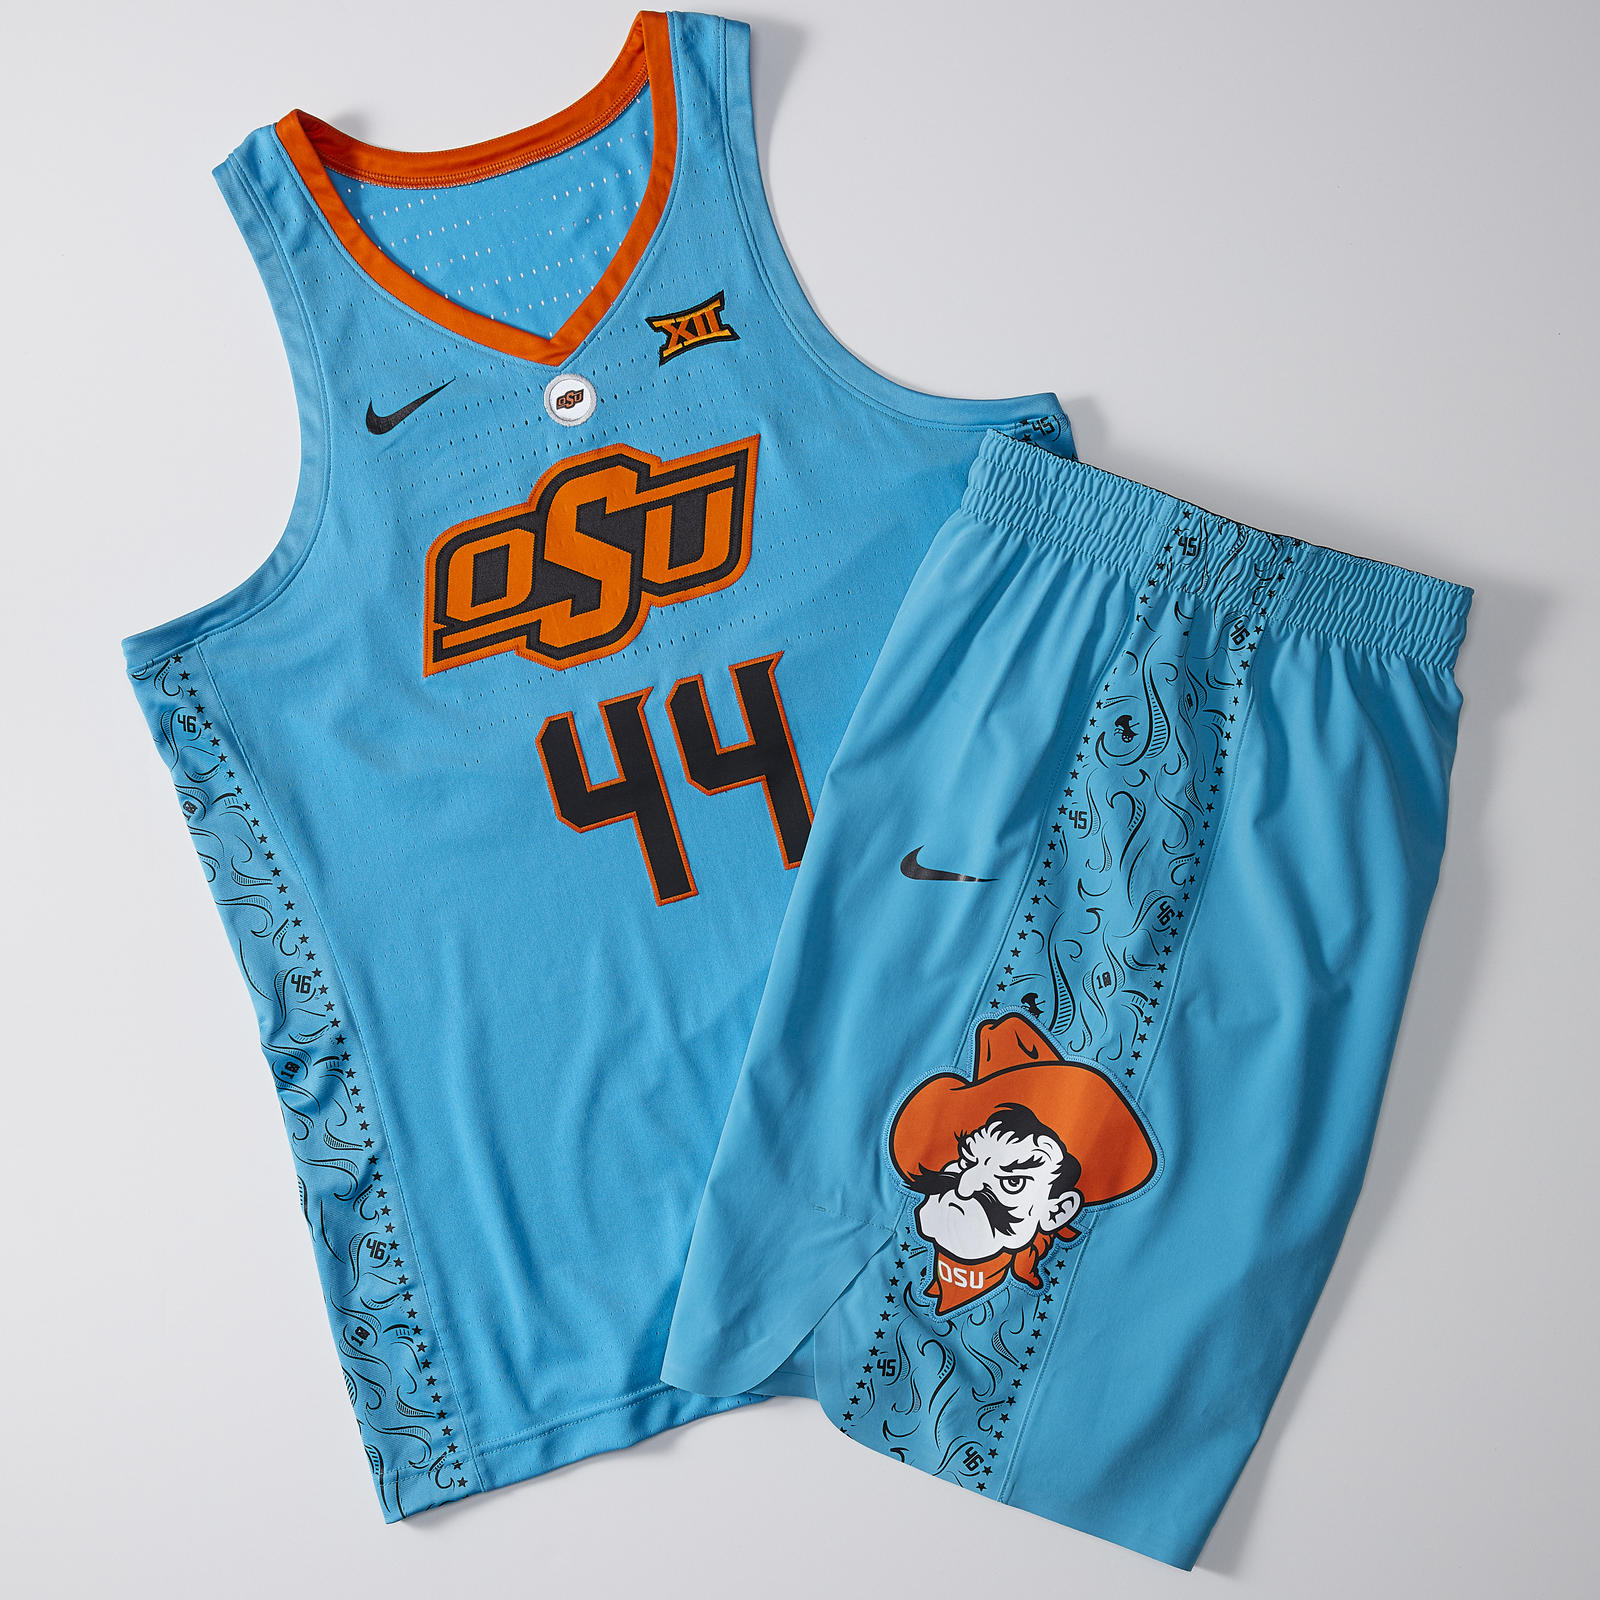 The Nike N7 College Basketball Uniform: More Than a Turquoise Jersey 9